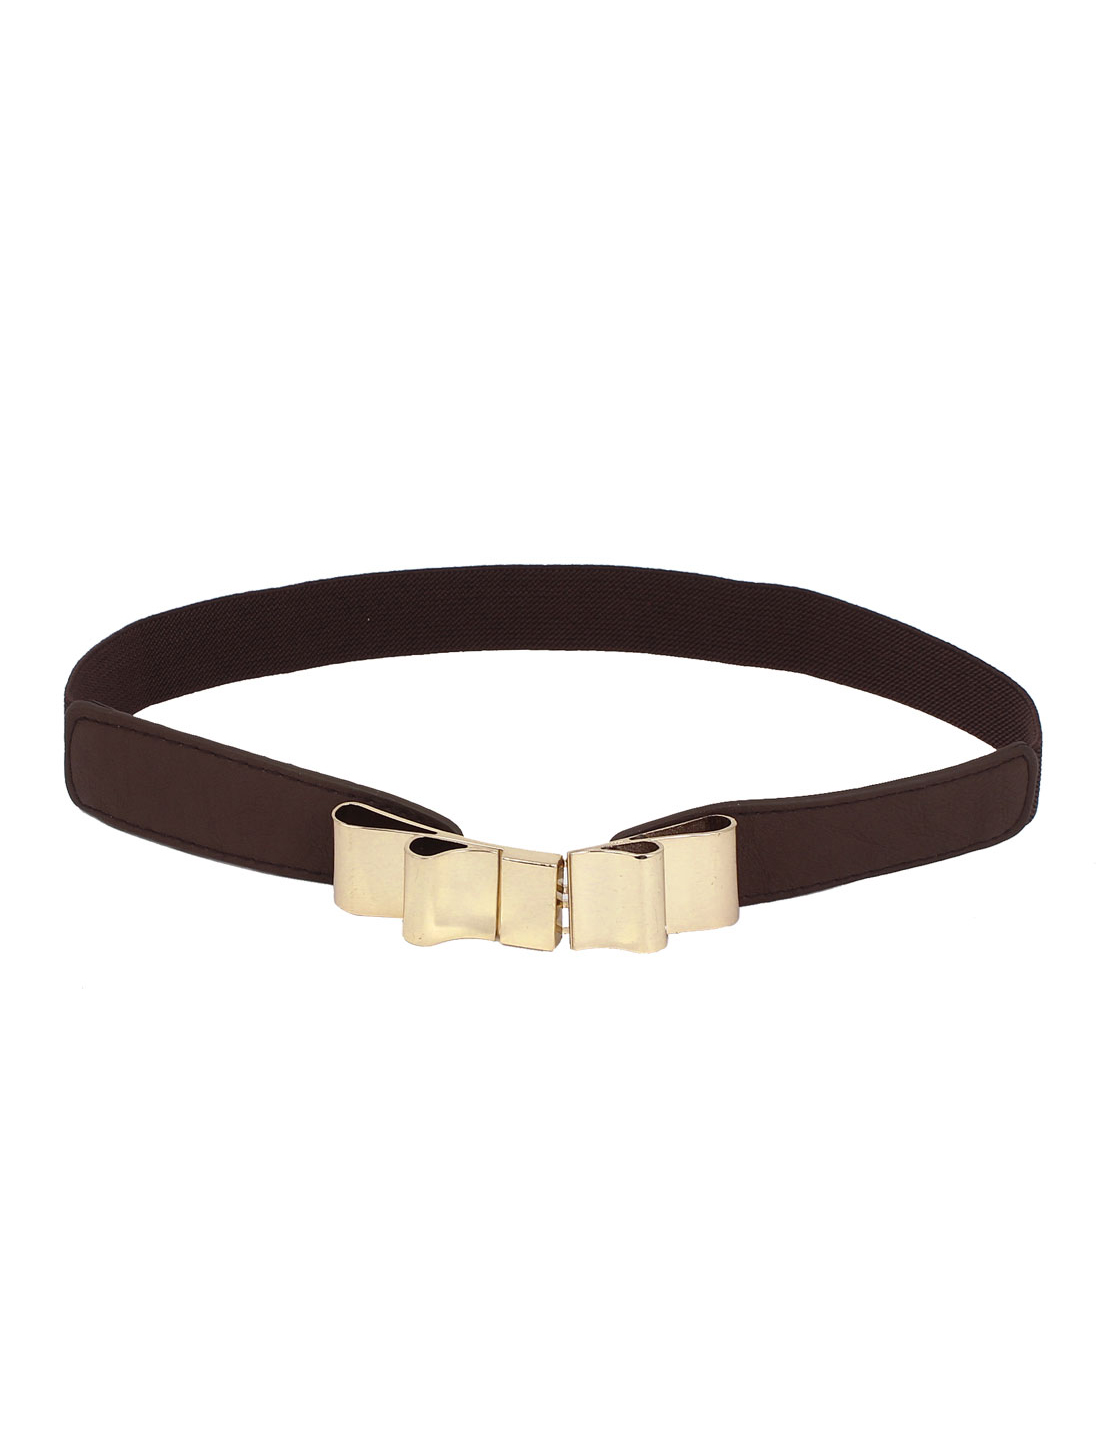 Woman Metal Bowknot Shape Buckle Link Elastic Stretch Waist Belt Brown